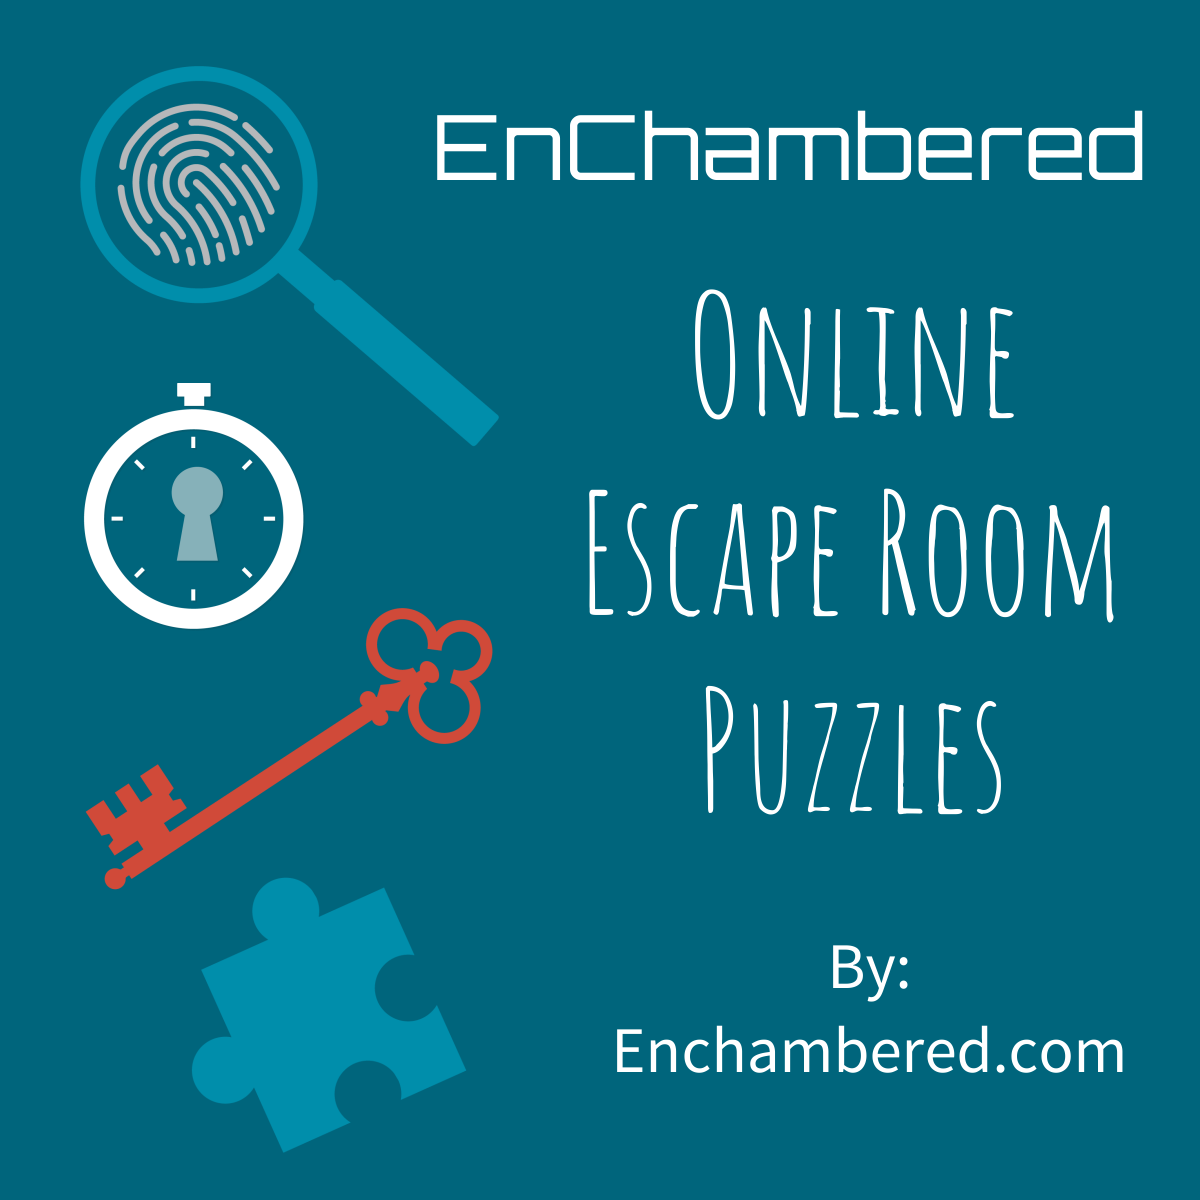 spyglass, fingerprint, clock, keyhole, puzzle piece and text enchambered online escape room puzzles